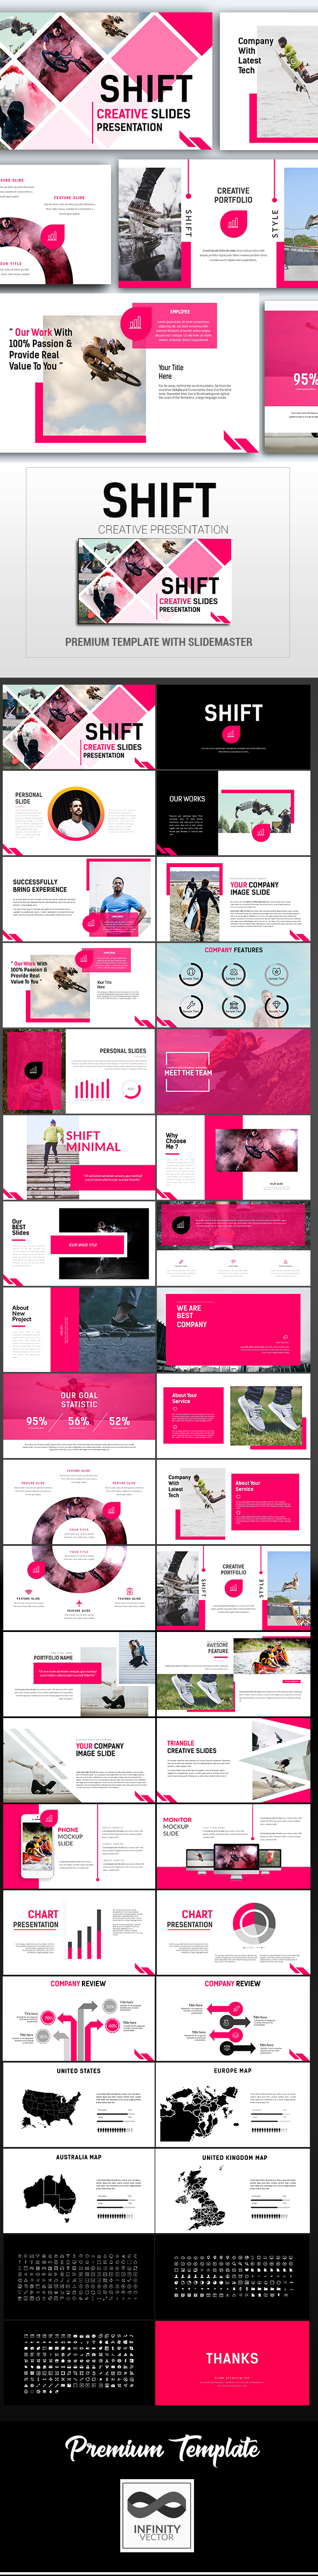 Shift Creative Presentation - PowerPoint Templates Presentation Templates